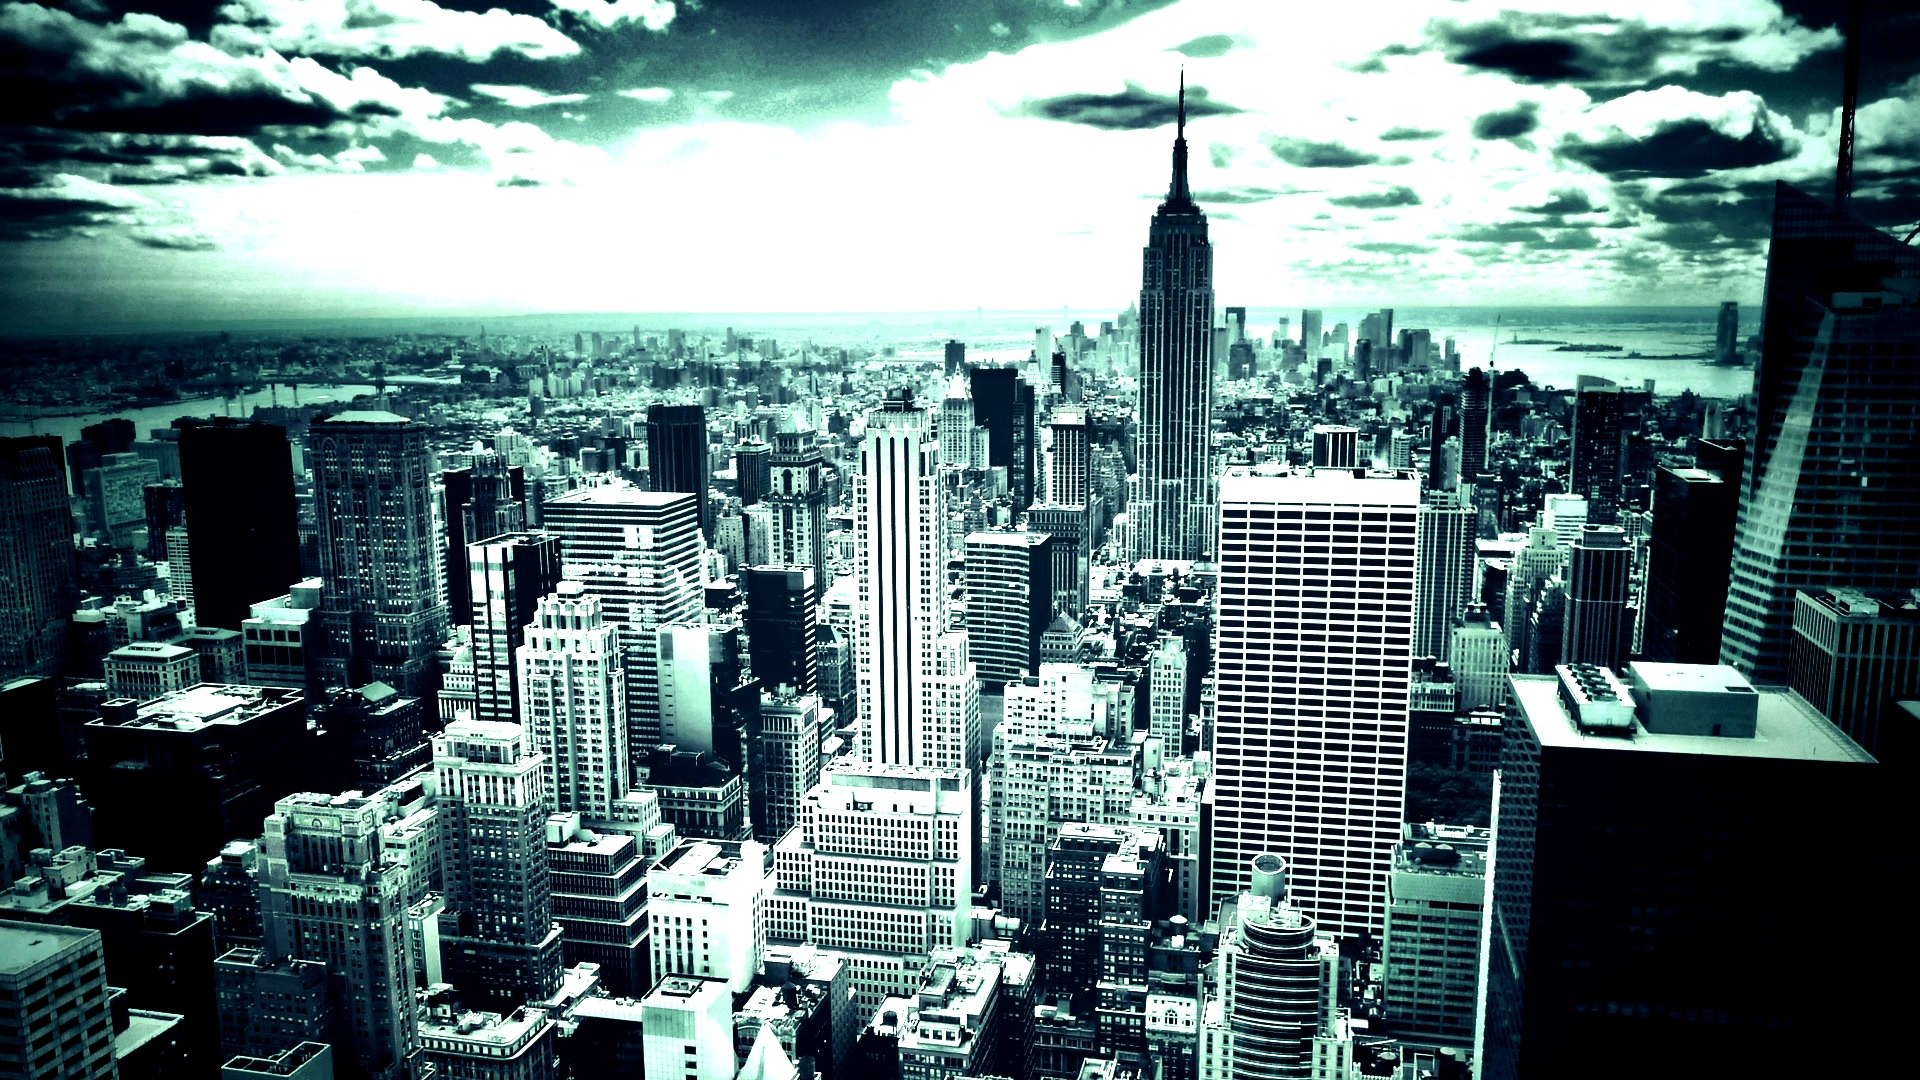 40 Hd New York City Wallpapers Backgrounds For Free Download